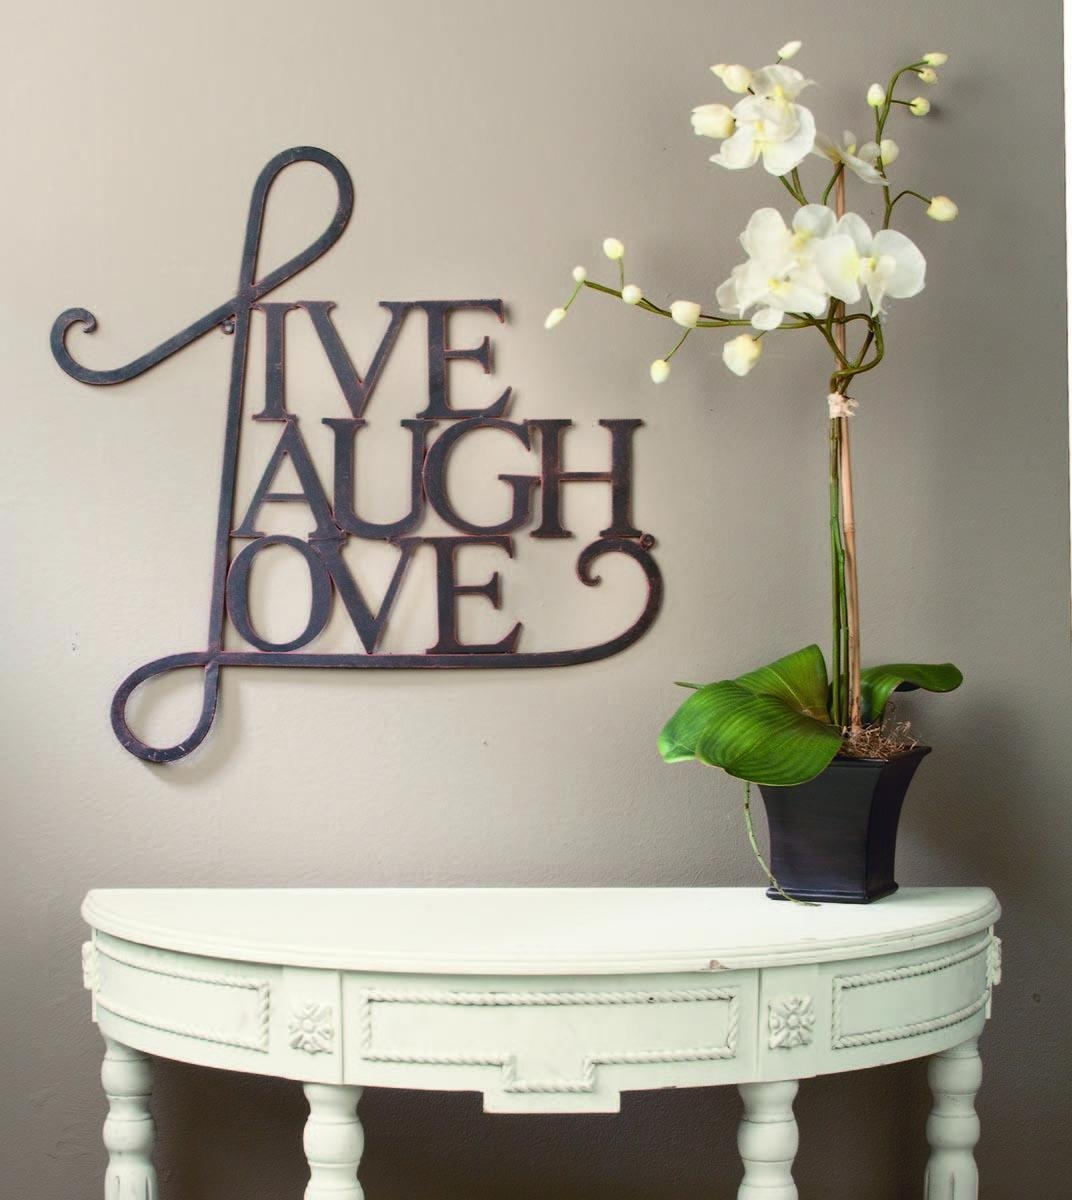 3 Reasons Why You Should Choose Live Laugh Love Wall Décor with Live Laugh Love Wall Art Metal